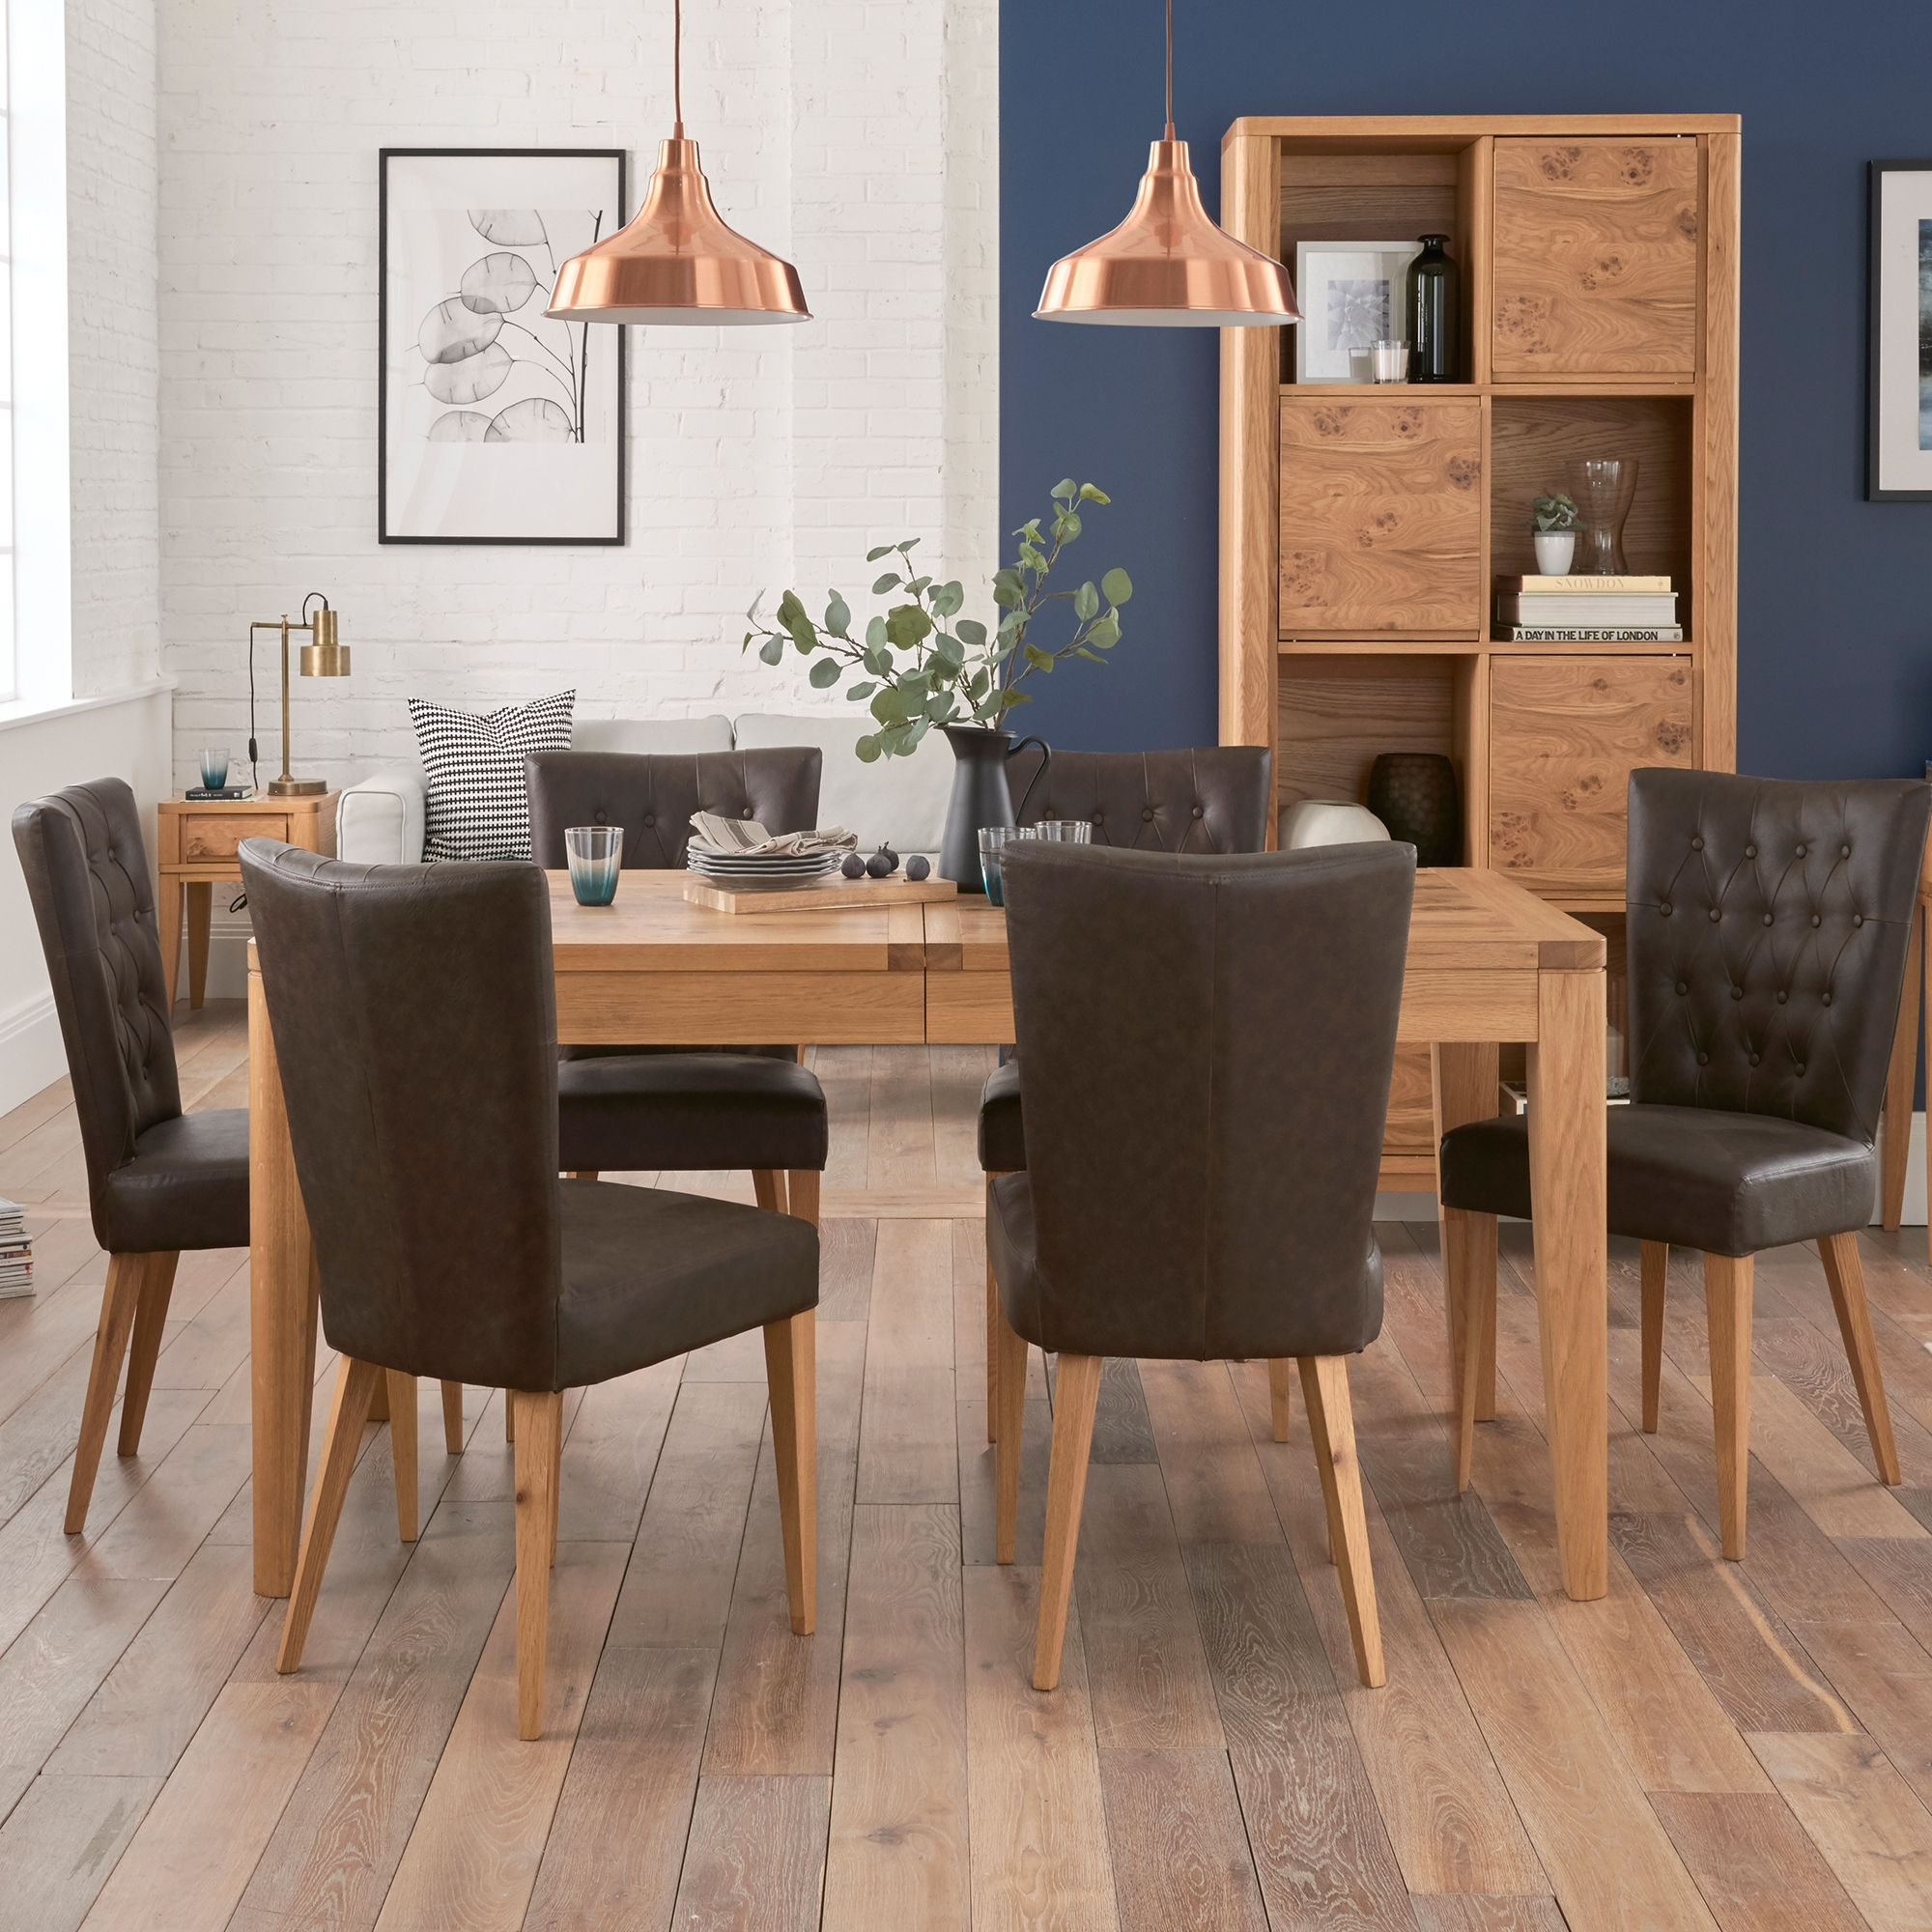 Dining Room Chairs Montreal Craft And Home